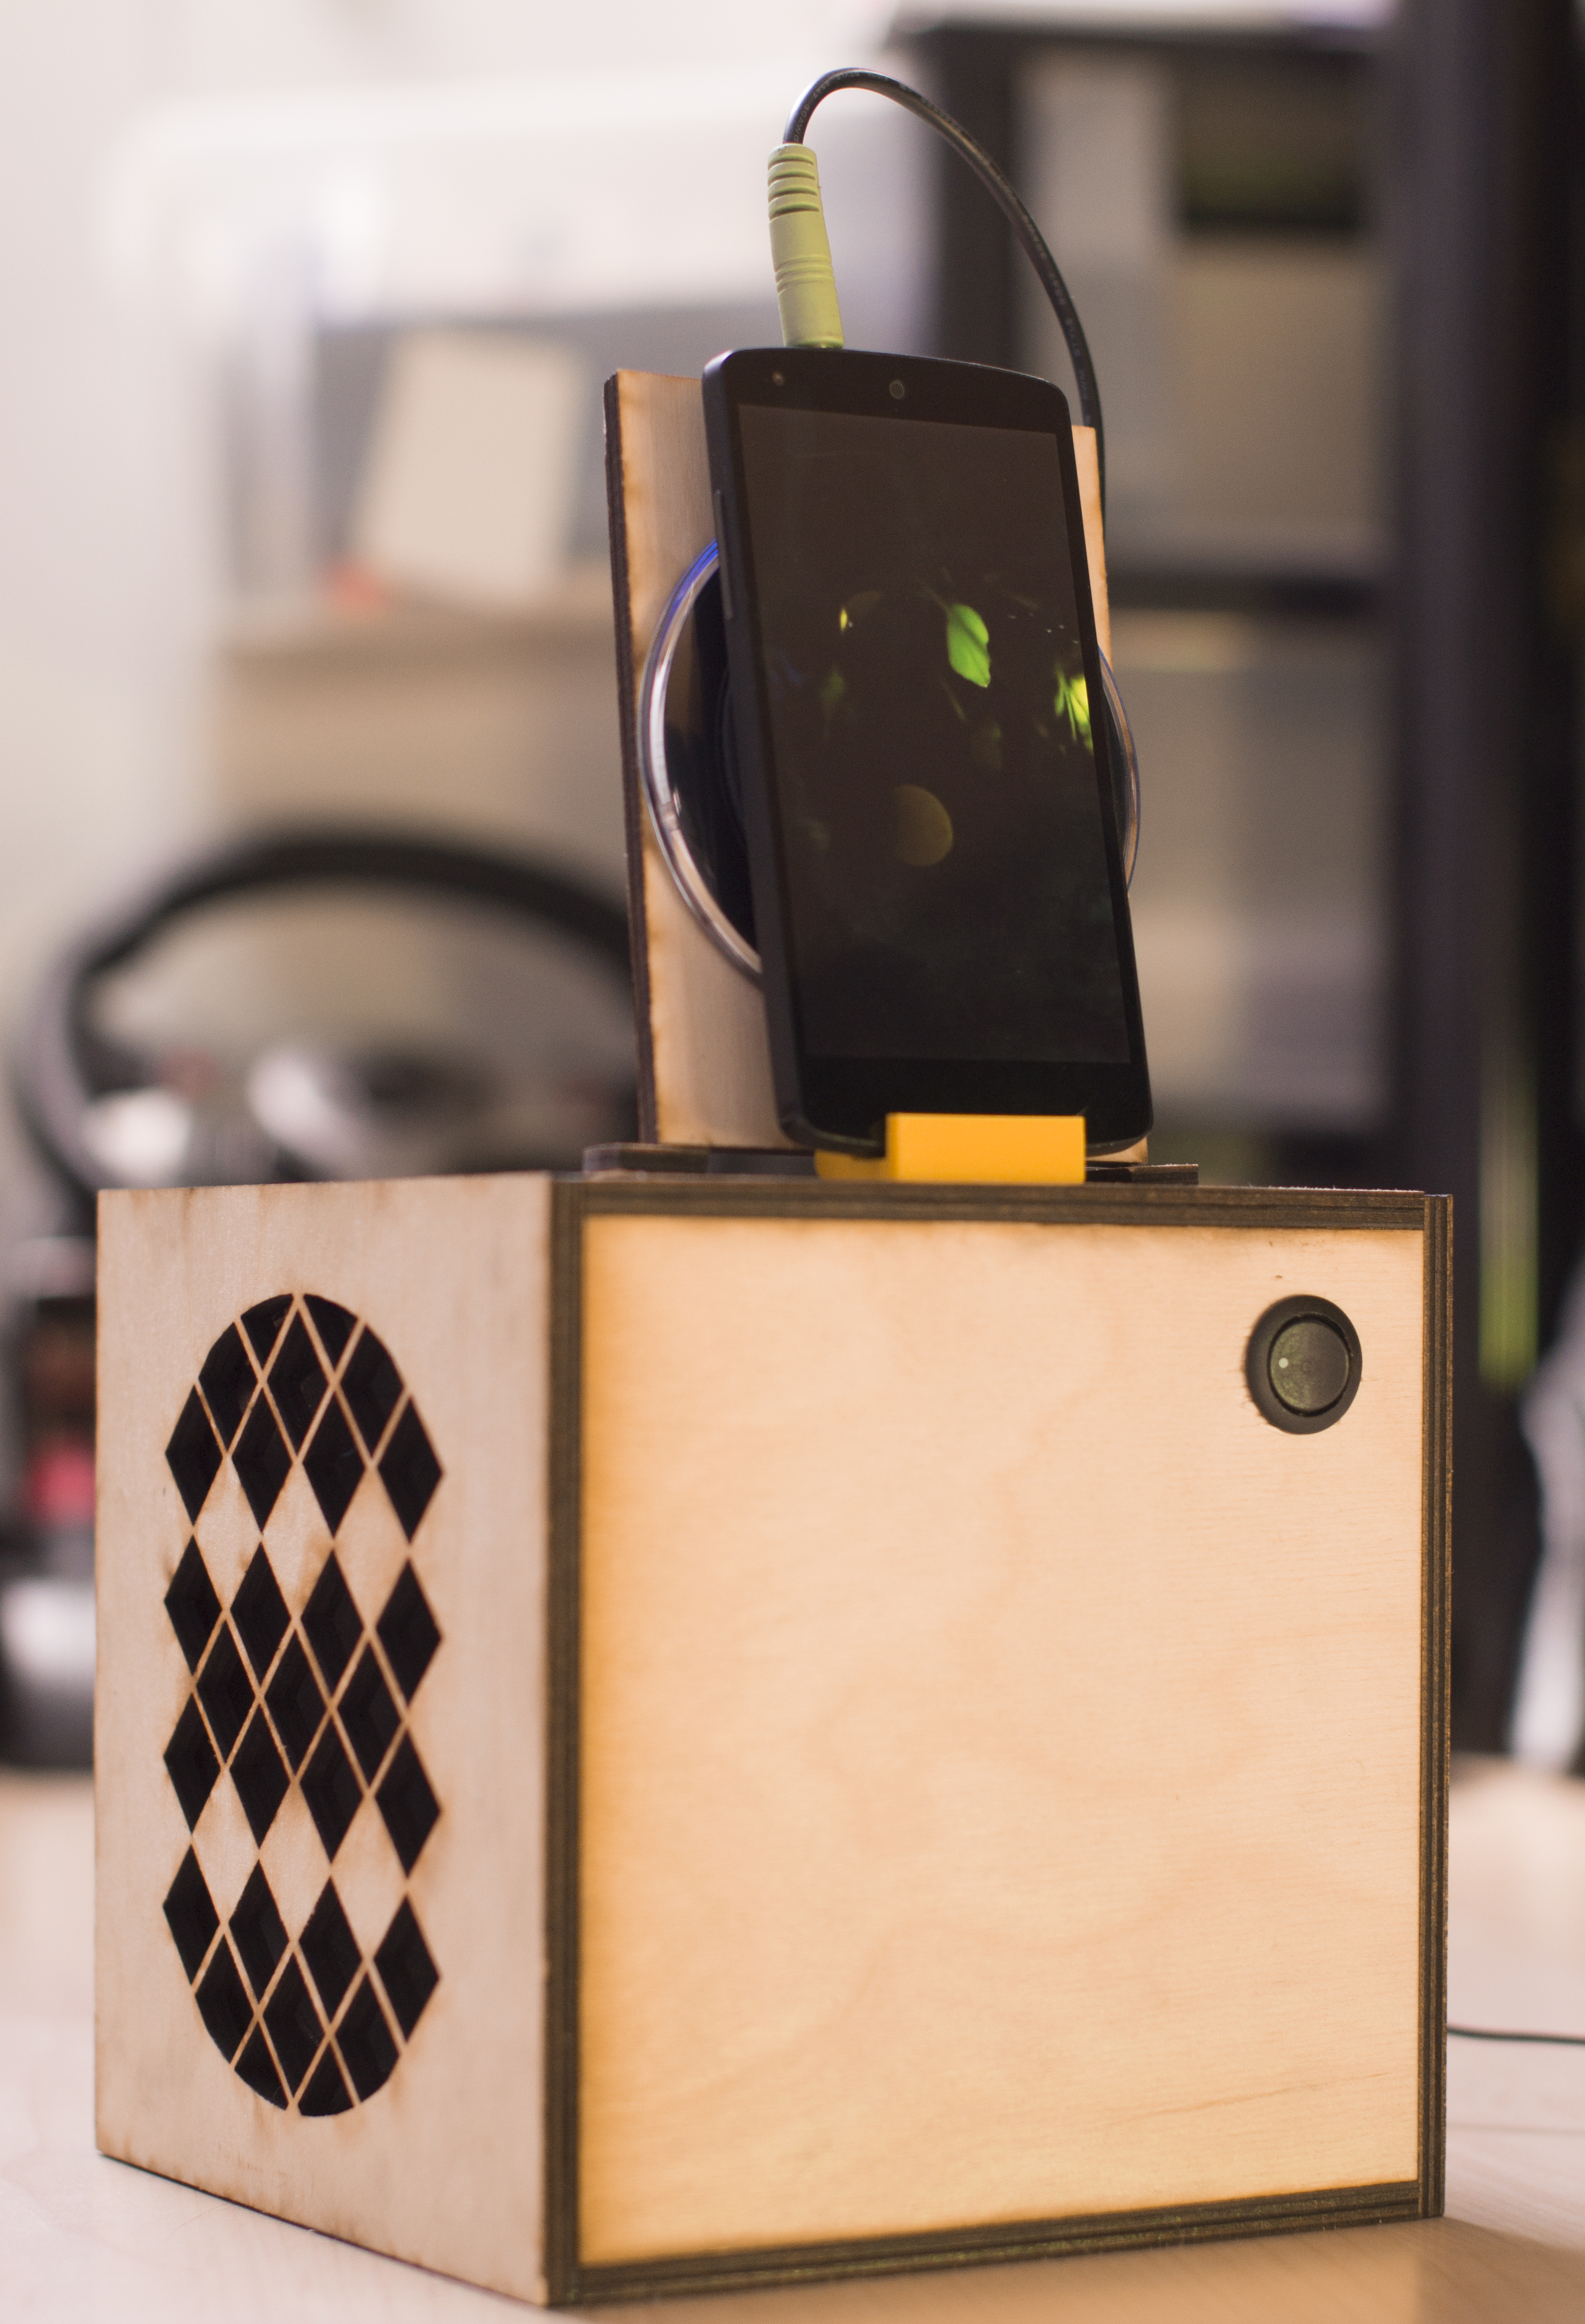 Picture of The Phone Charging Speaker Box